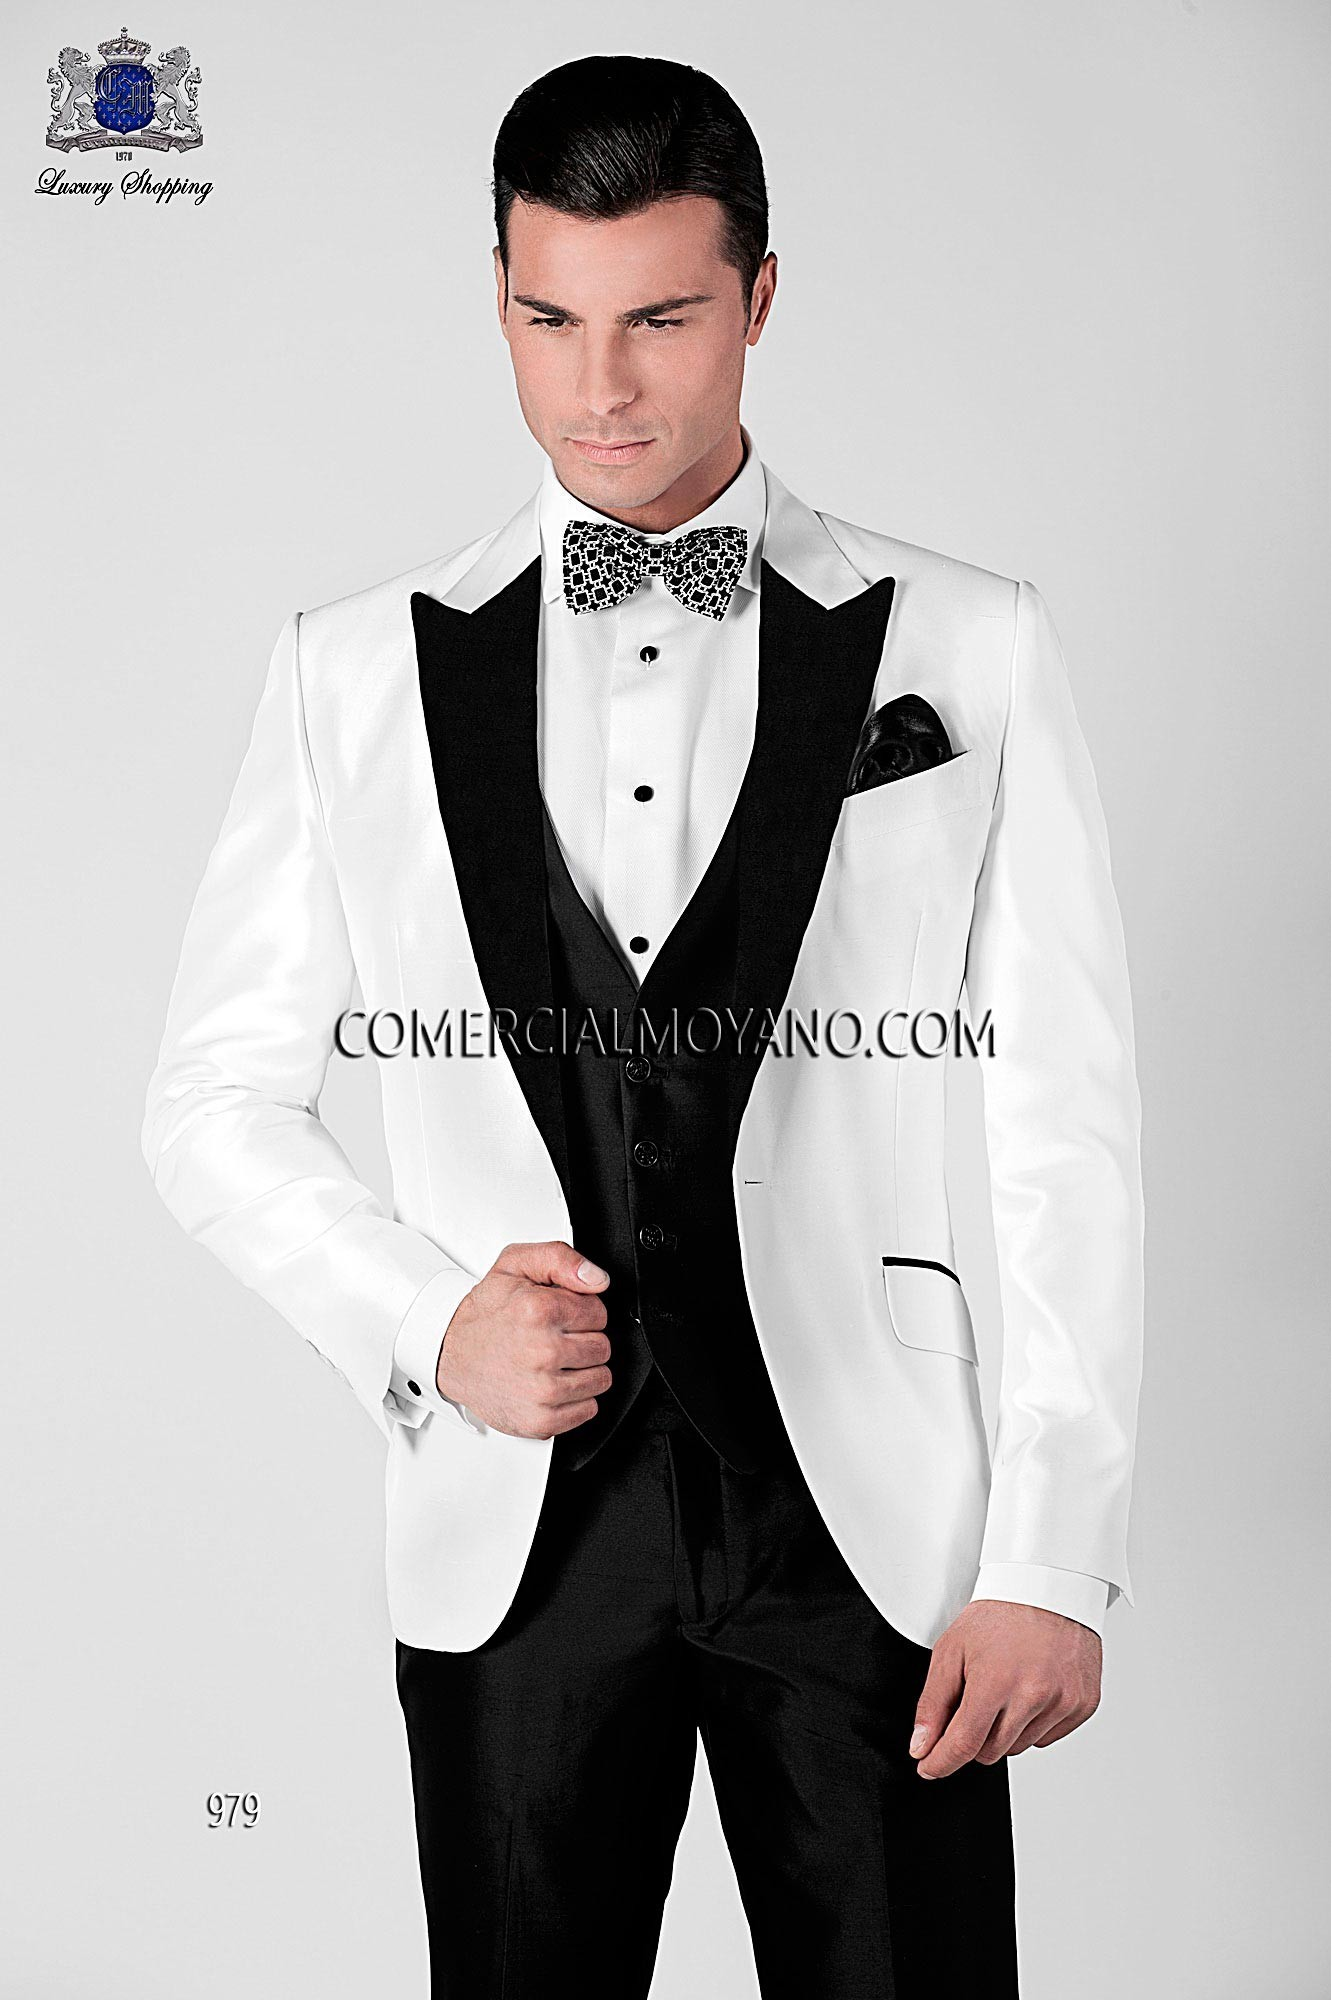 Italian white tuxedo wedding suit in Shantung silk fabric with black satin lapel and black trousers, style 979 Ottavio Nuccio Gala, Black Tie collection.